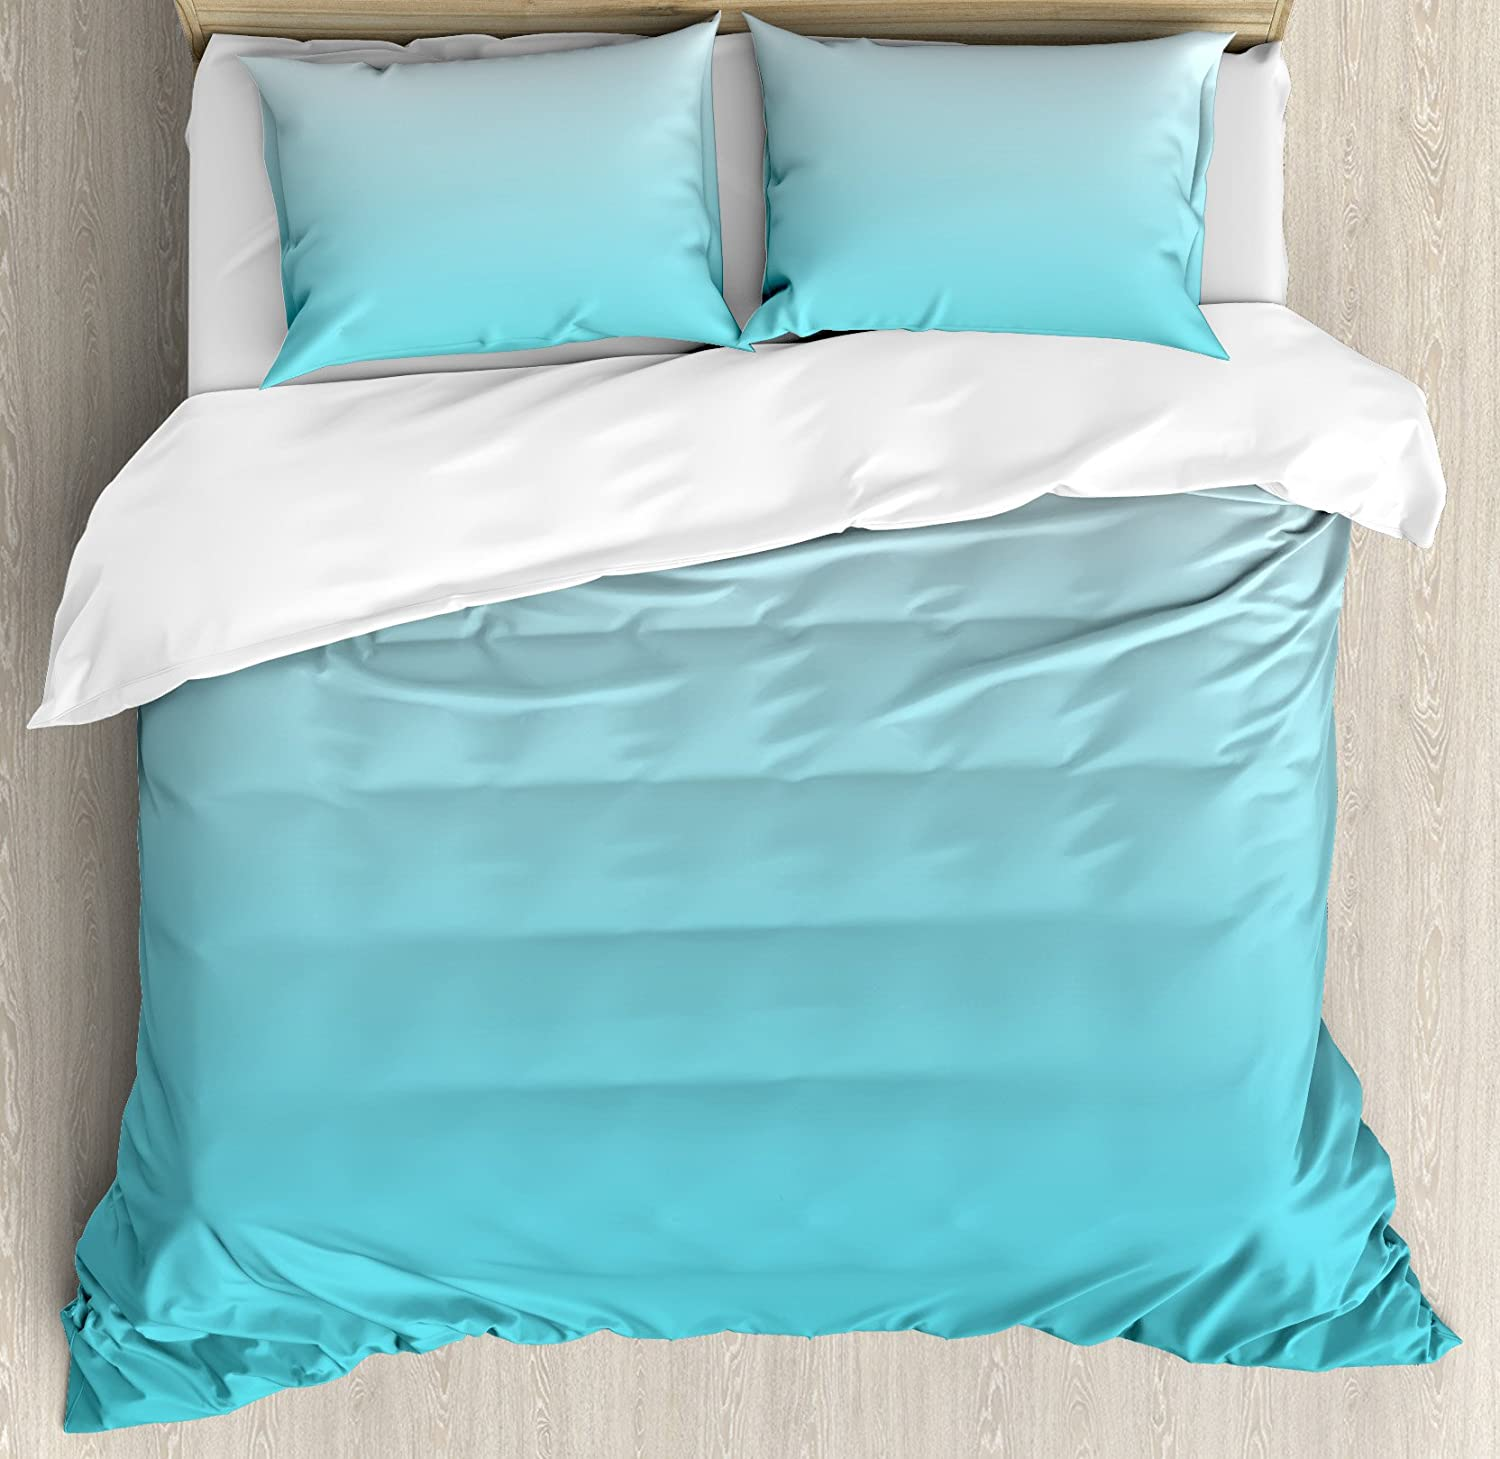 Ambesonne Ombre Duvet Cover Set, Deep Maldives Sealife Ocean Inspired Aquatic Color Modern Design Digital Art, Decorative 3 Piece Bedding Set with 2 Pillow Shams, Queen Size, Turquoise White